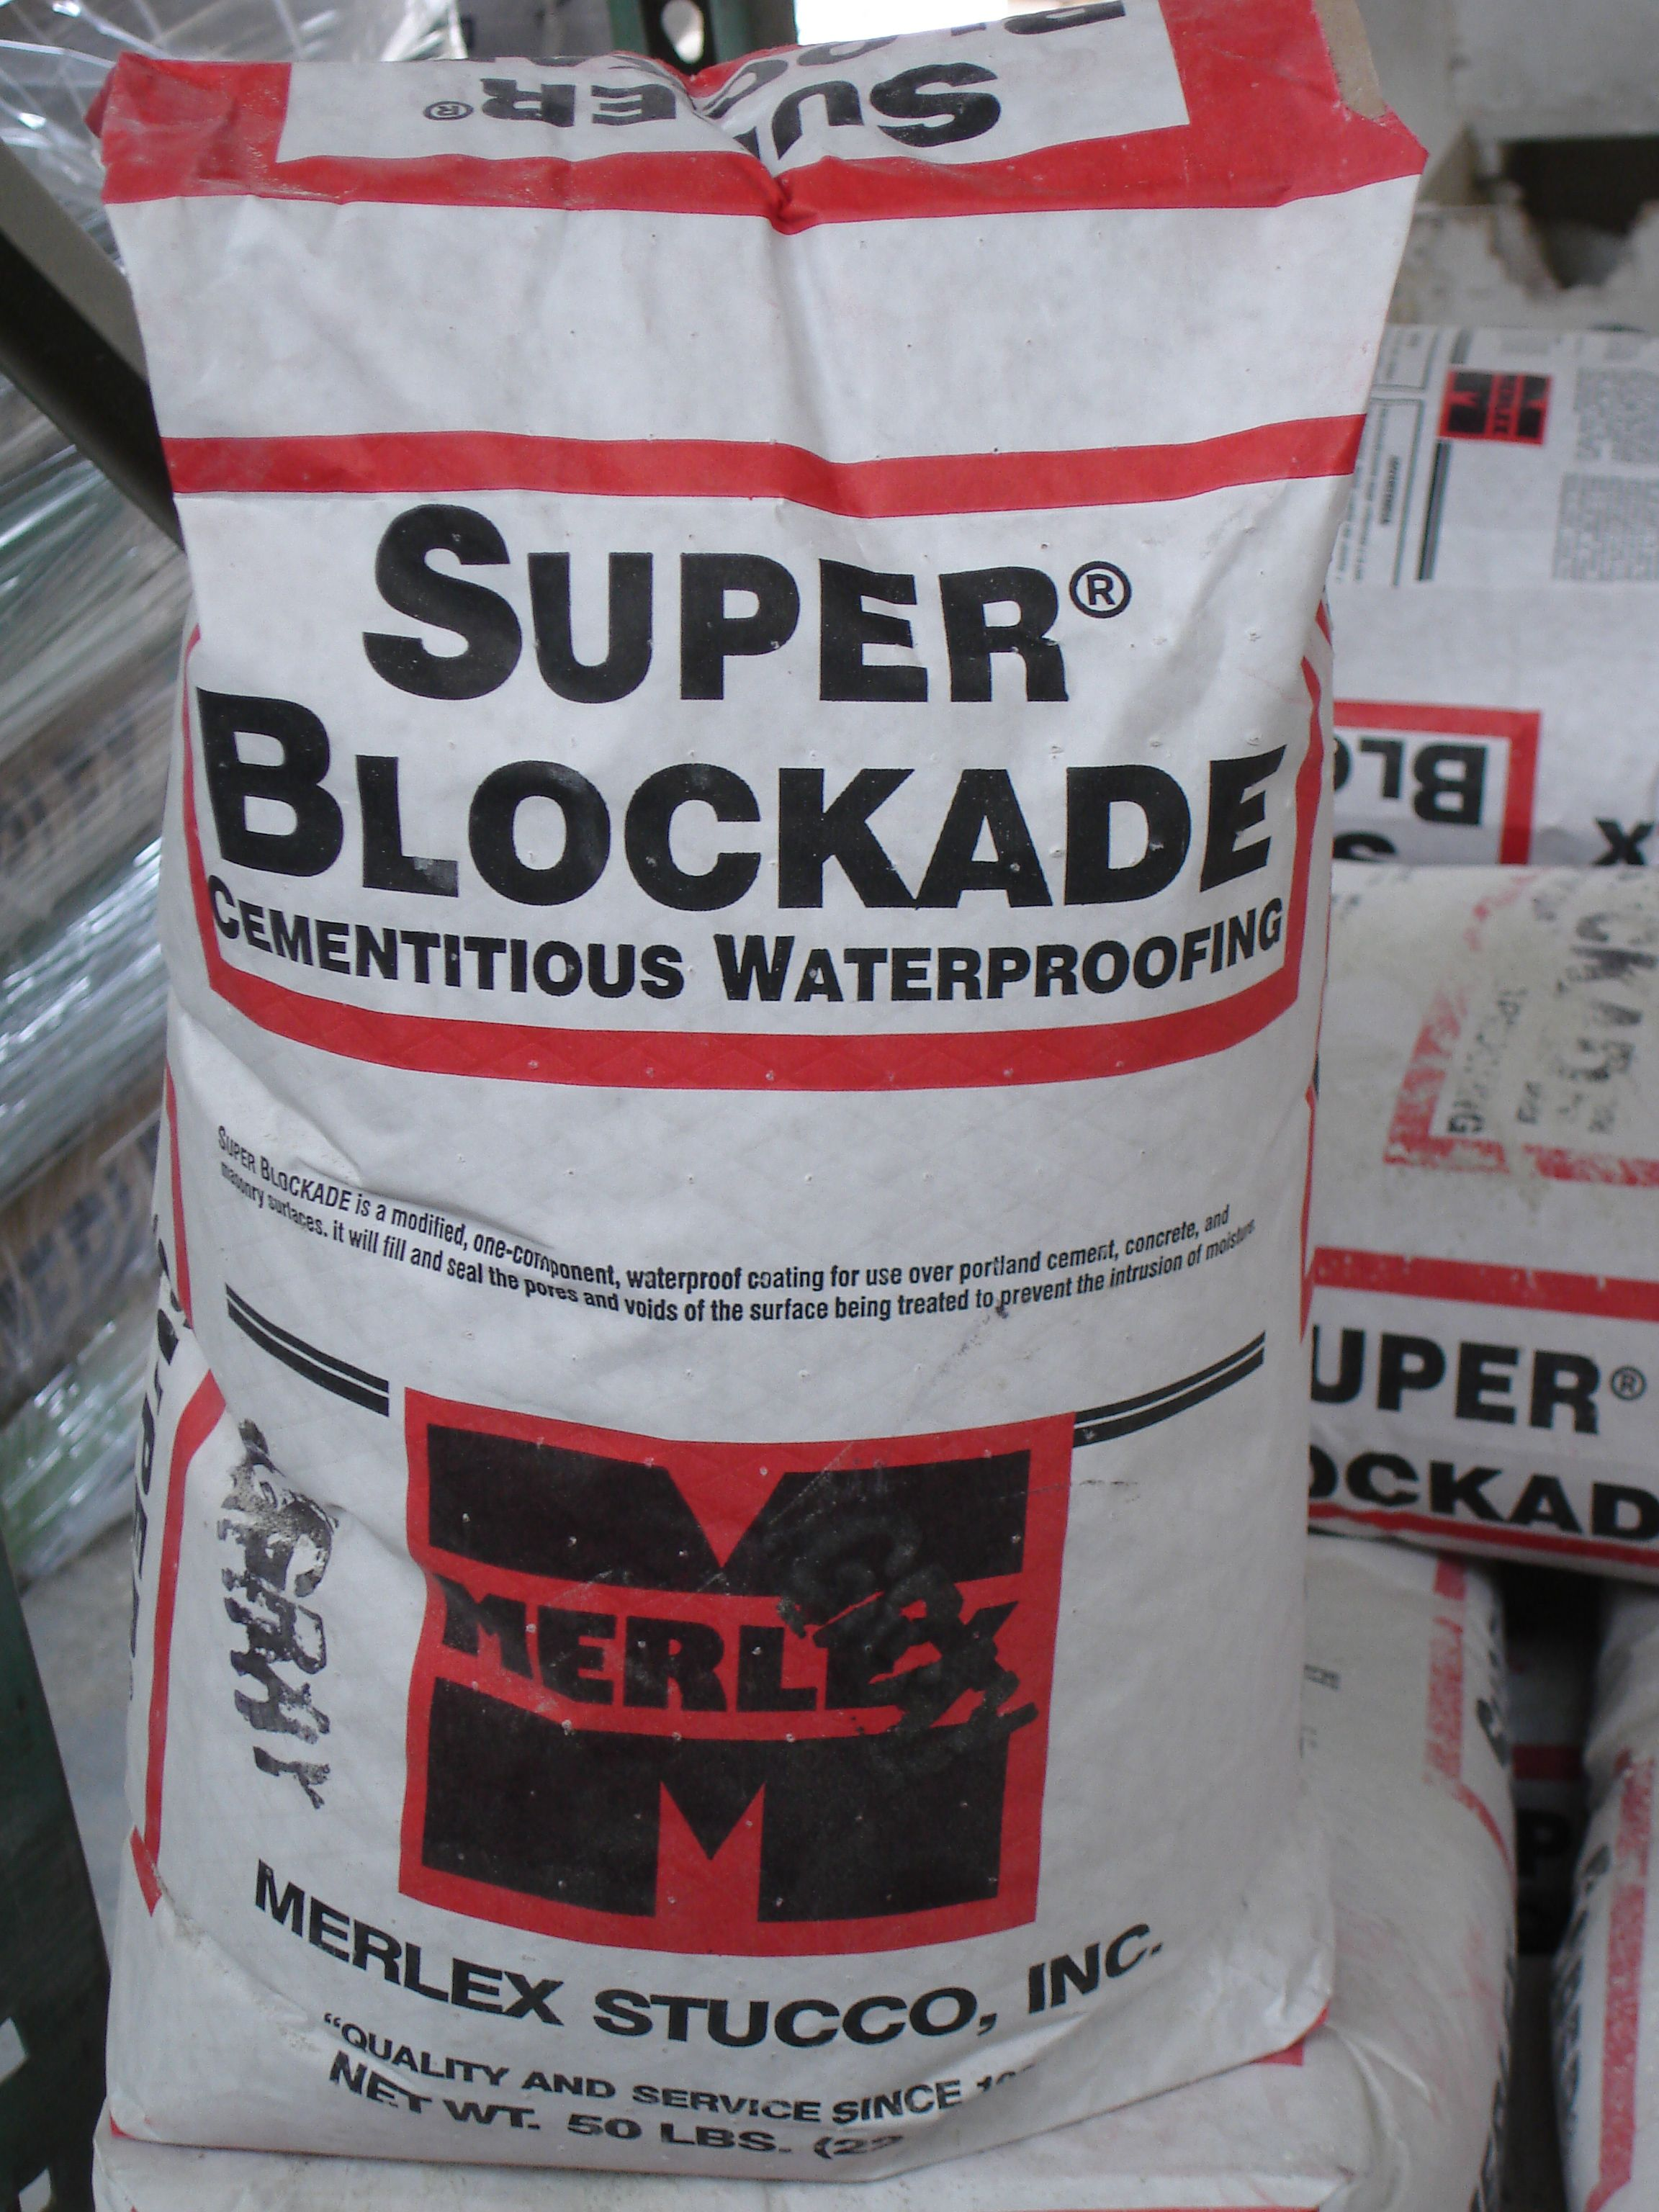 Super Blockade is a cementitious waterproofing product